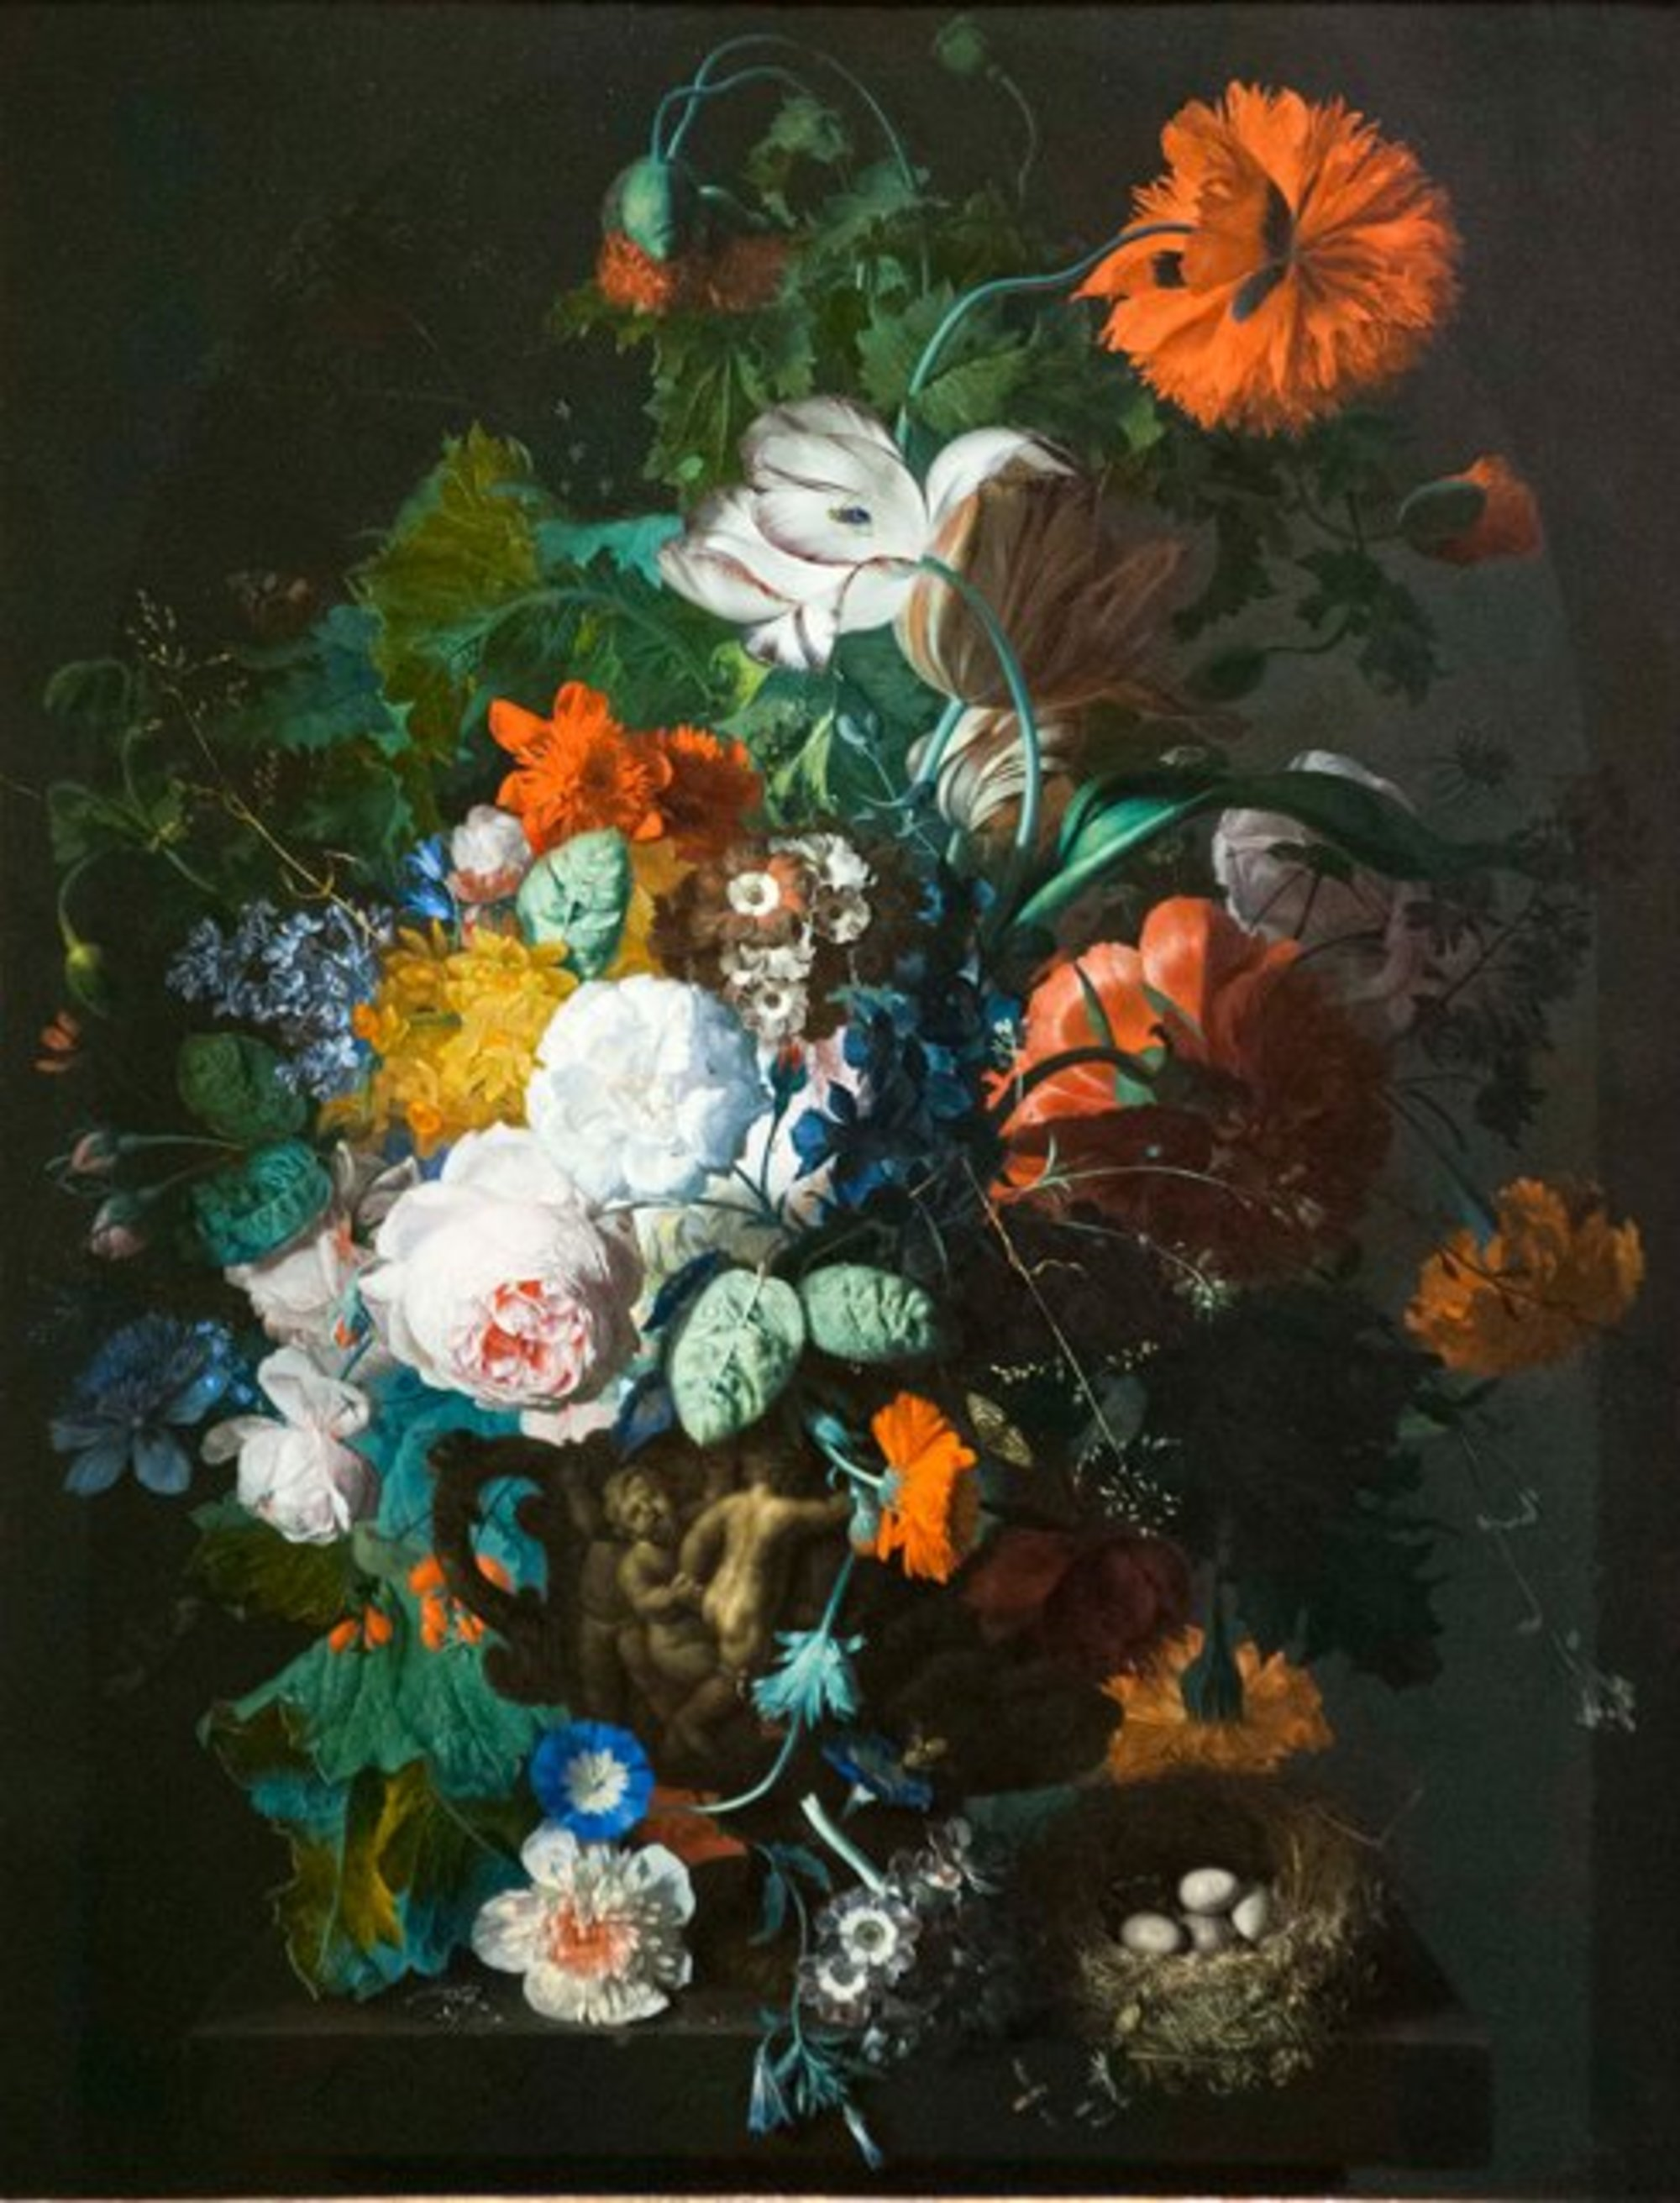 Jan-van-Huysum---Still-Life-of-Roses-Tulips-Peonies-and-other-Flowers-in-a-Sculpted-Vase-and-a-Birds-Nest-on-a-Ledge.jpg